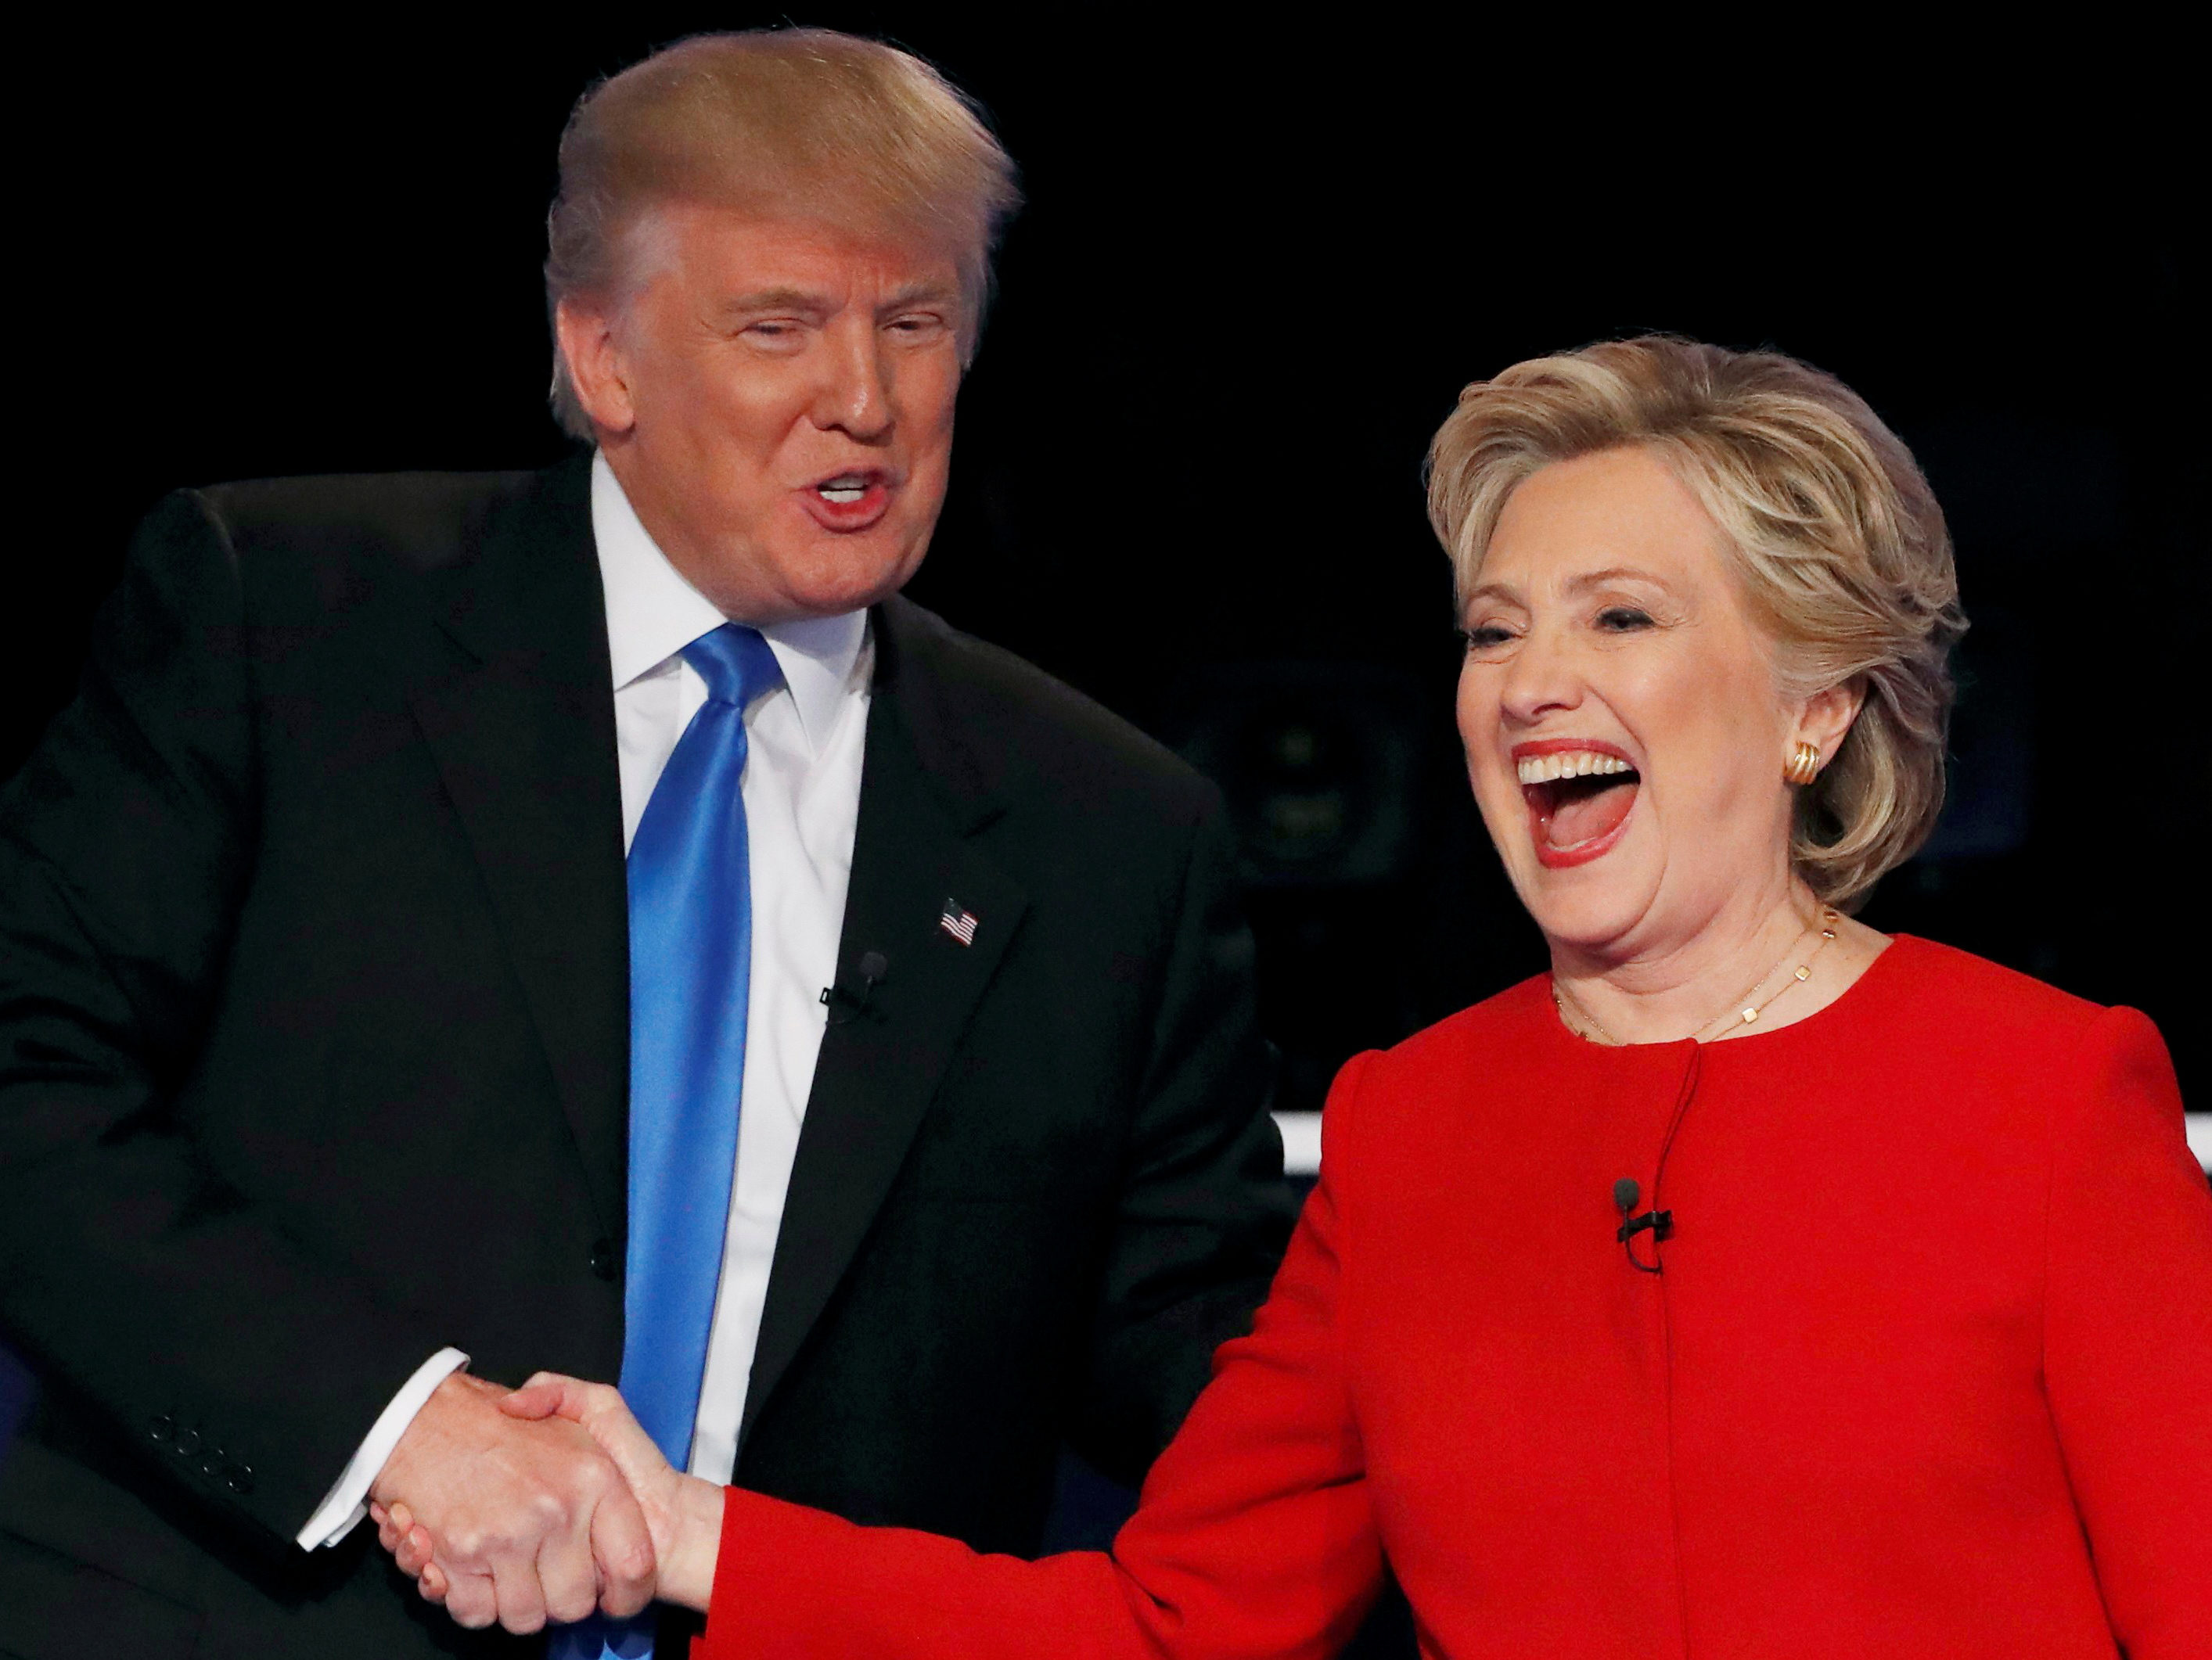 Republican U.S. presidential nominee Donald Trump shakes hands with Democratic U.S. presidential nominee Hillary Clinton at the conclusion of their first presidential debate in New York, September 26, 2016. Picture: Reuters/Mike Segar